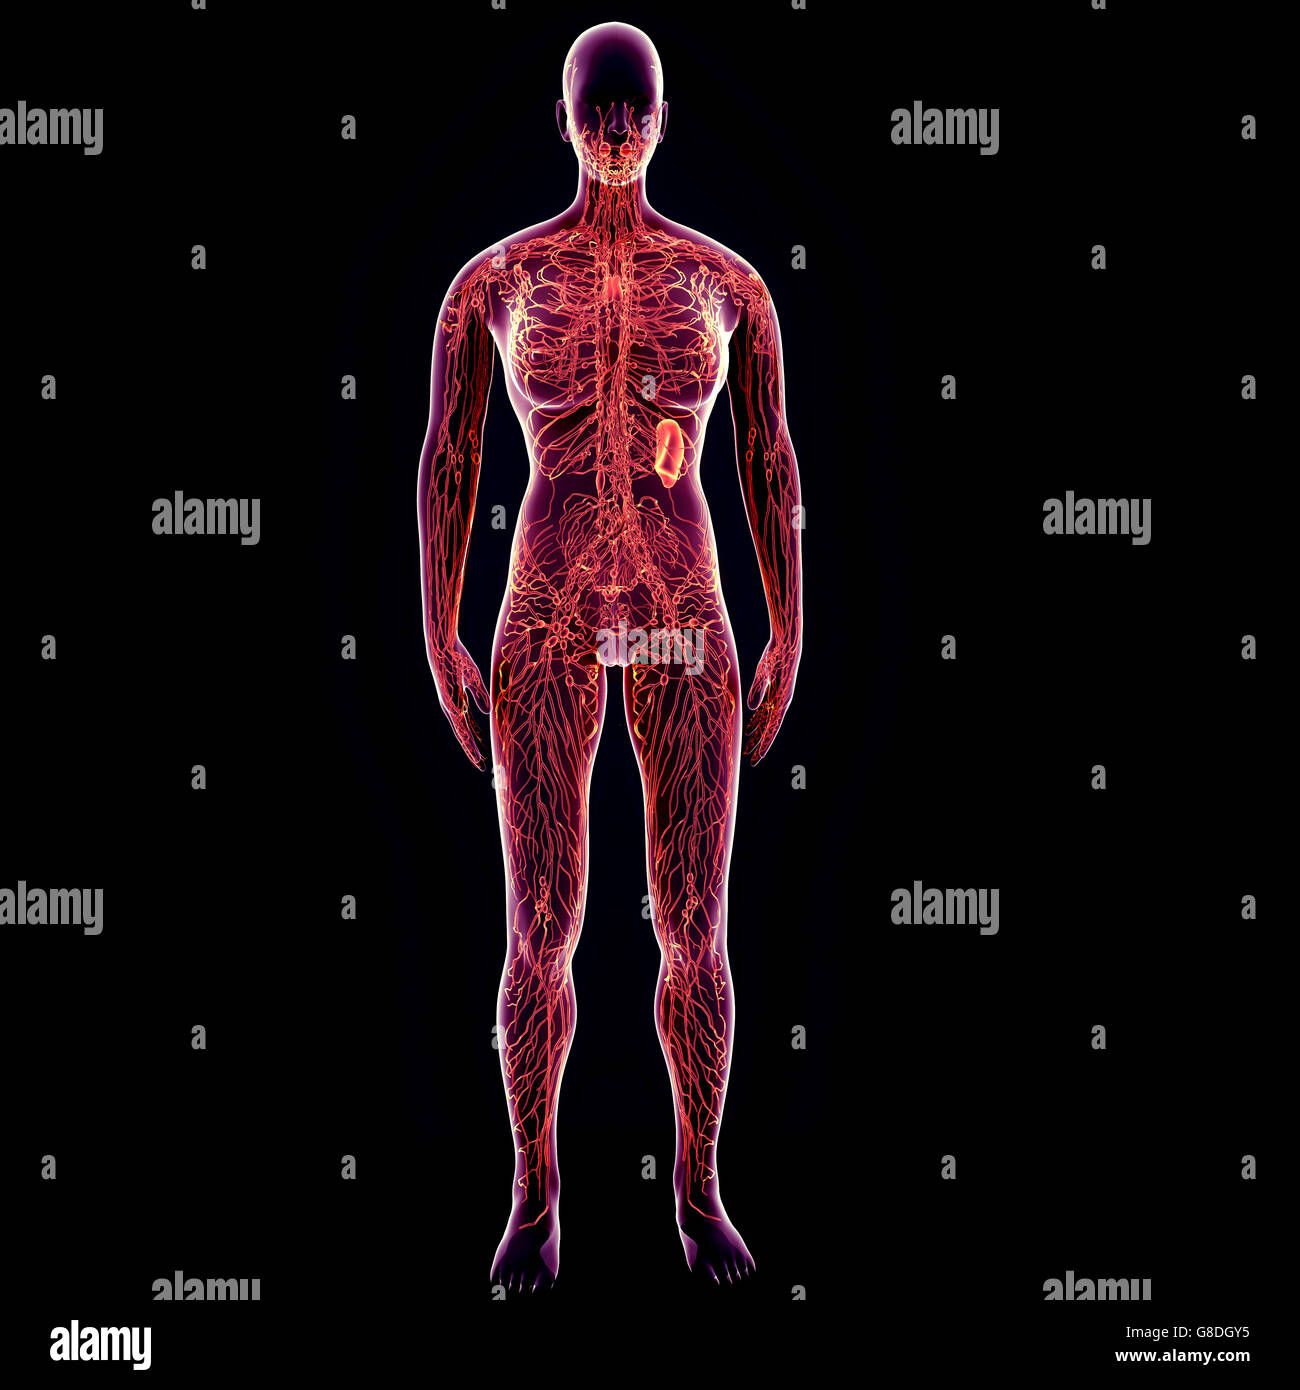 3d illustration of human body Nervous System anatomy Stock Photo ...